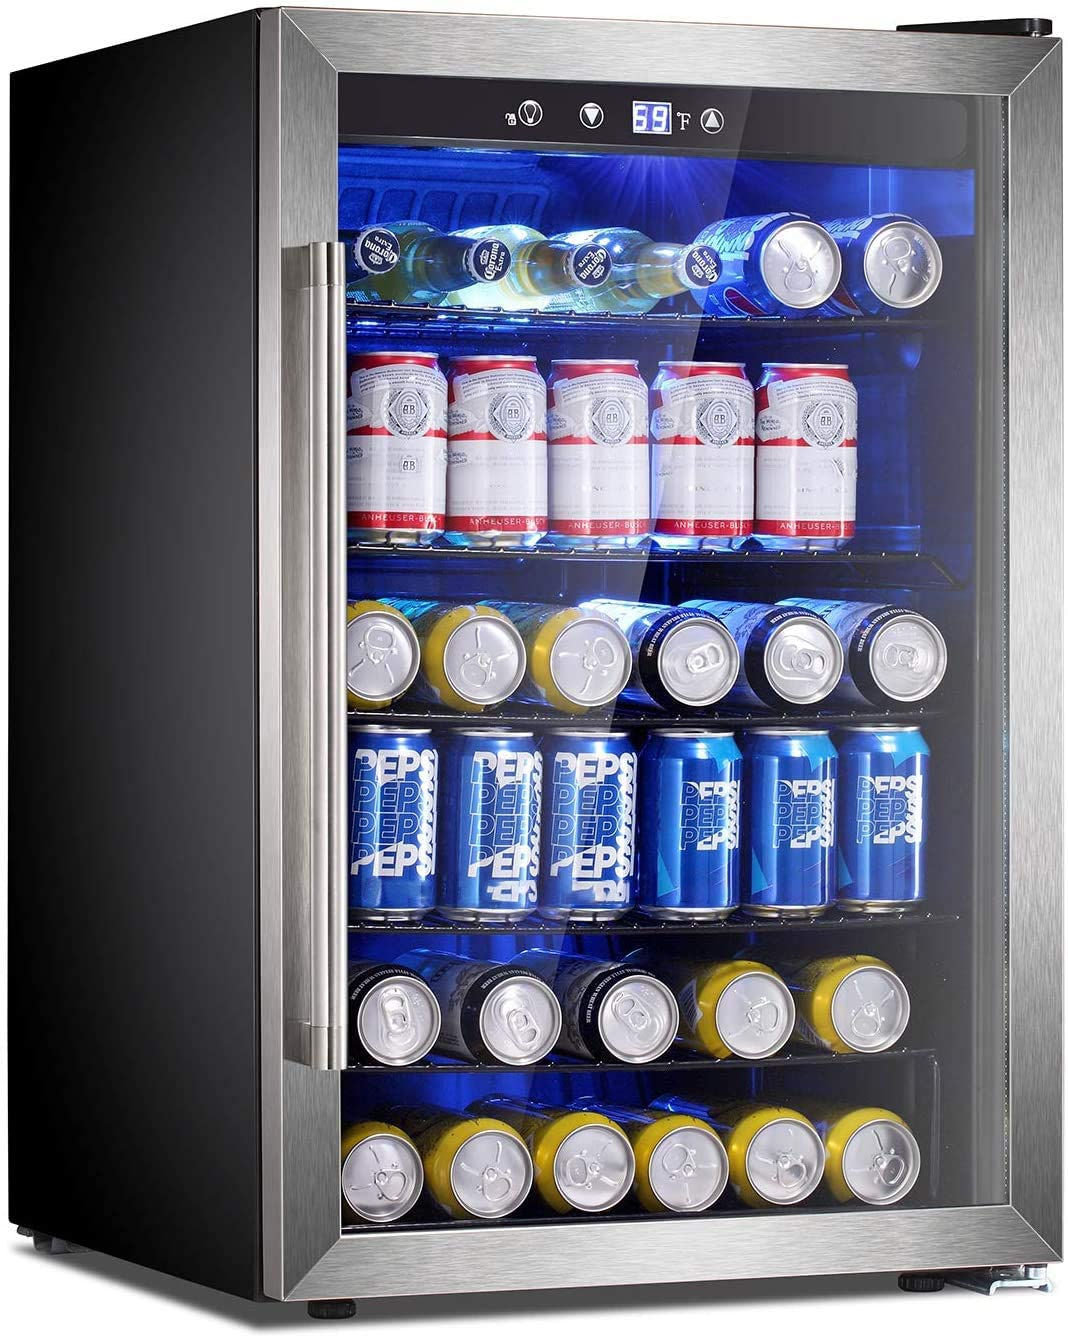 Antarctic Star Best Beverage or wine refrigerators Relatively Most Lower Price.